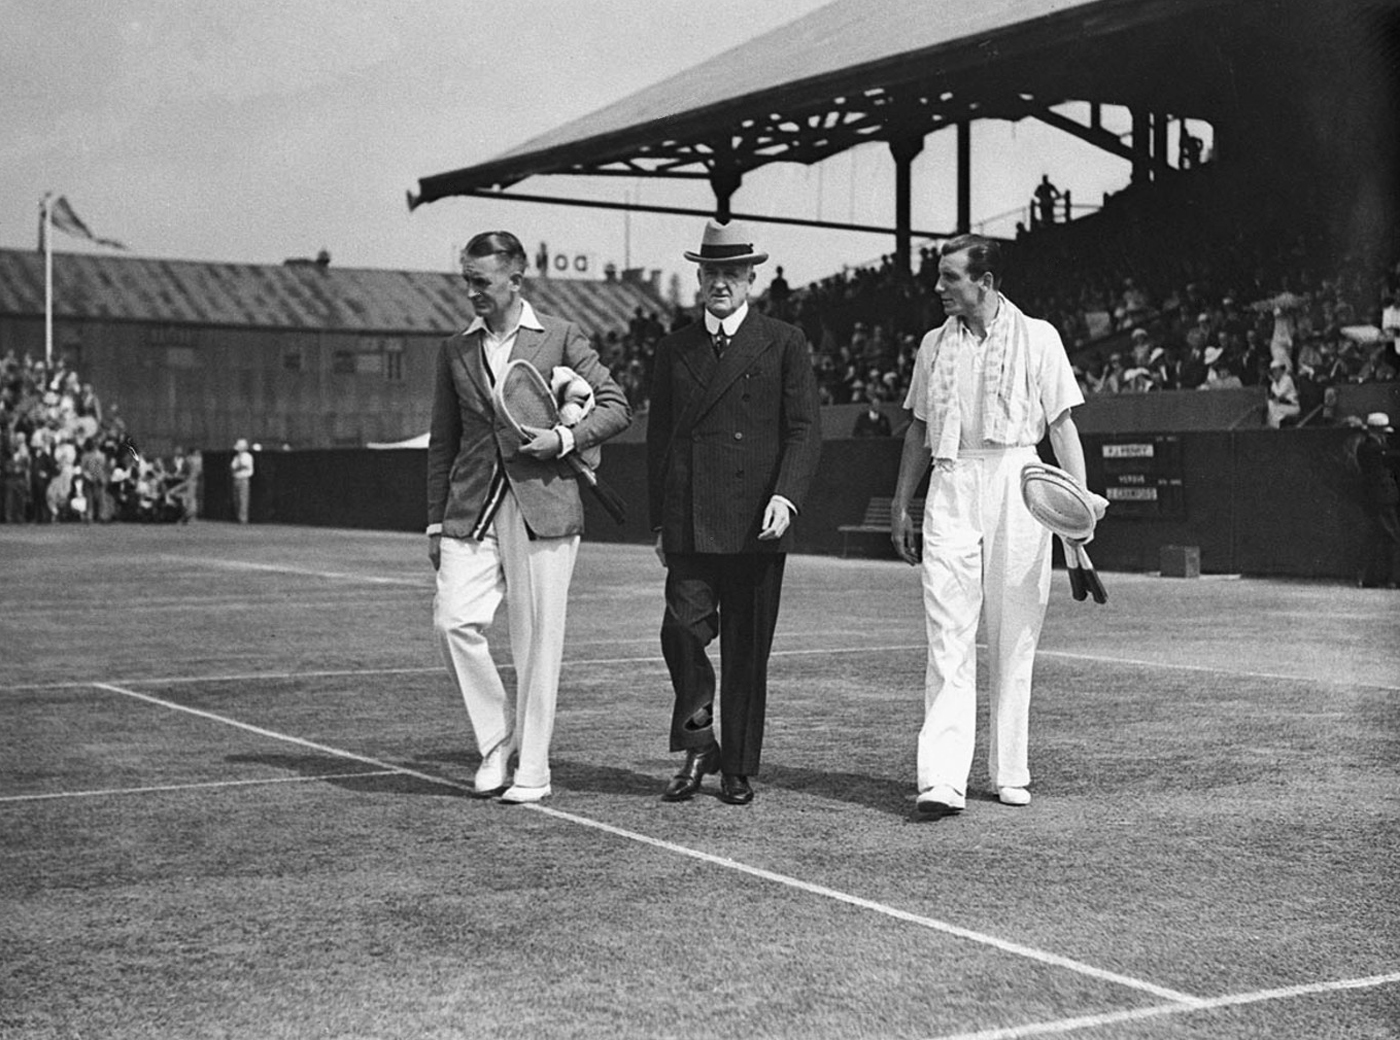 Australian tennis player Jack Crawford (left) and British tennis player Fred Perry (right) at the White City Stadium in Sydney, Australia with a senior tennis offical (center) 1930s